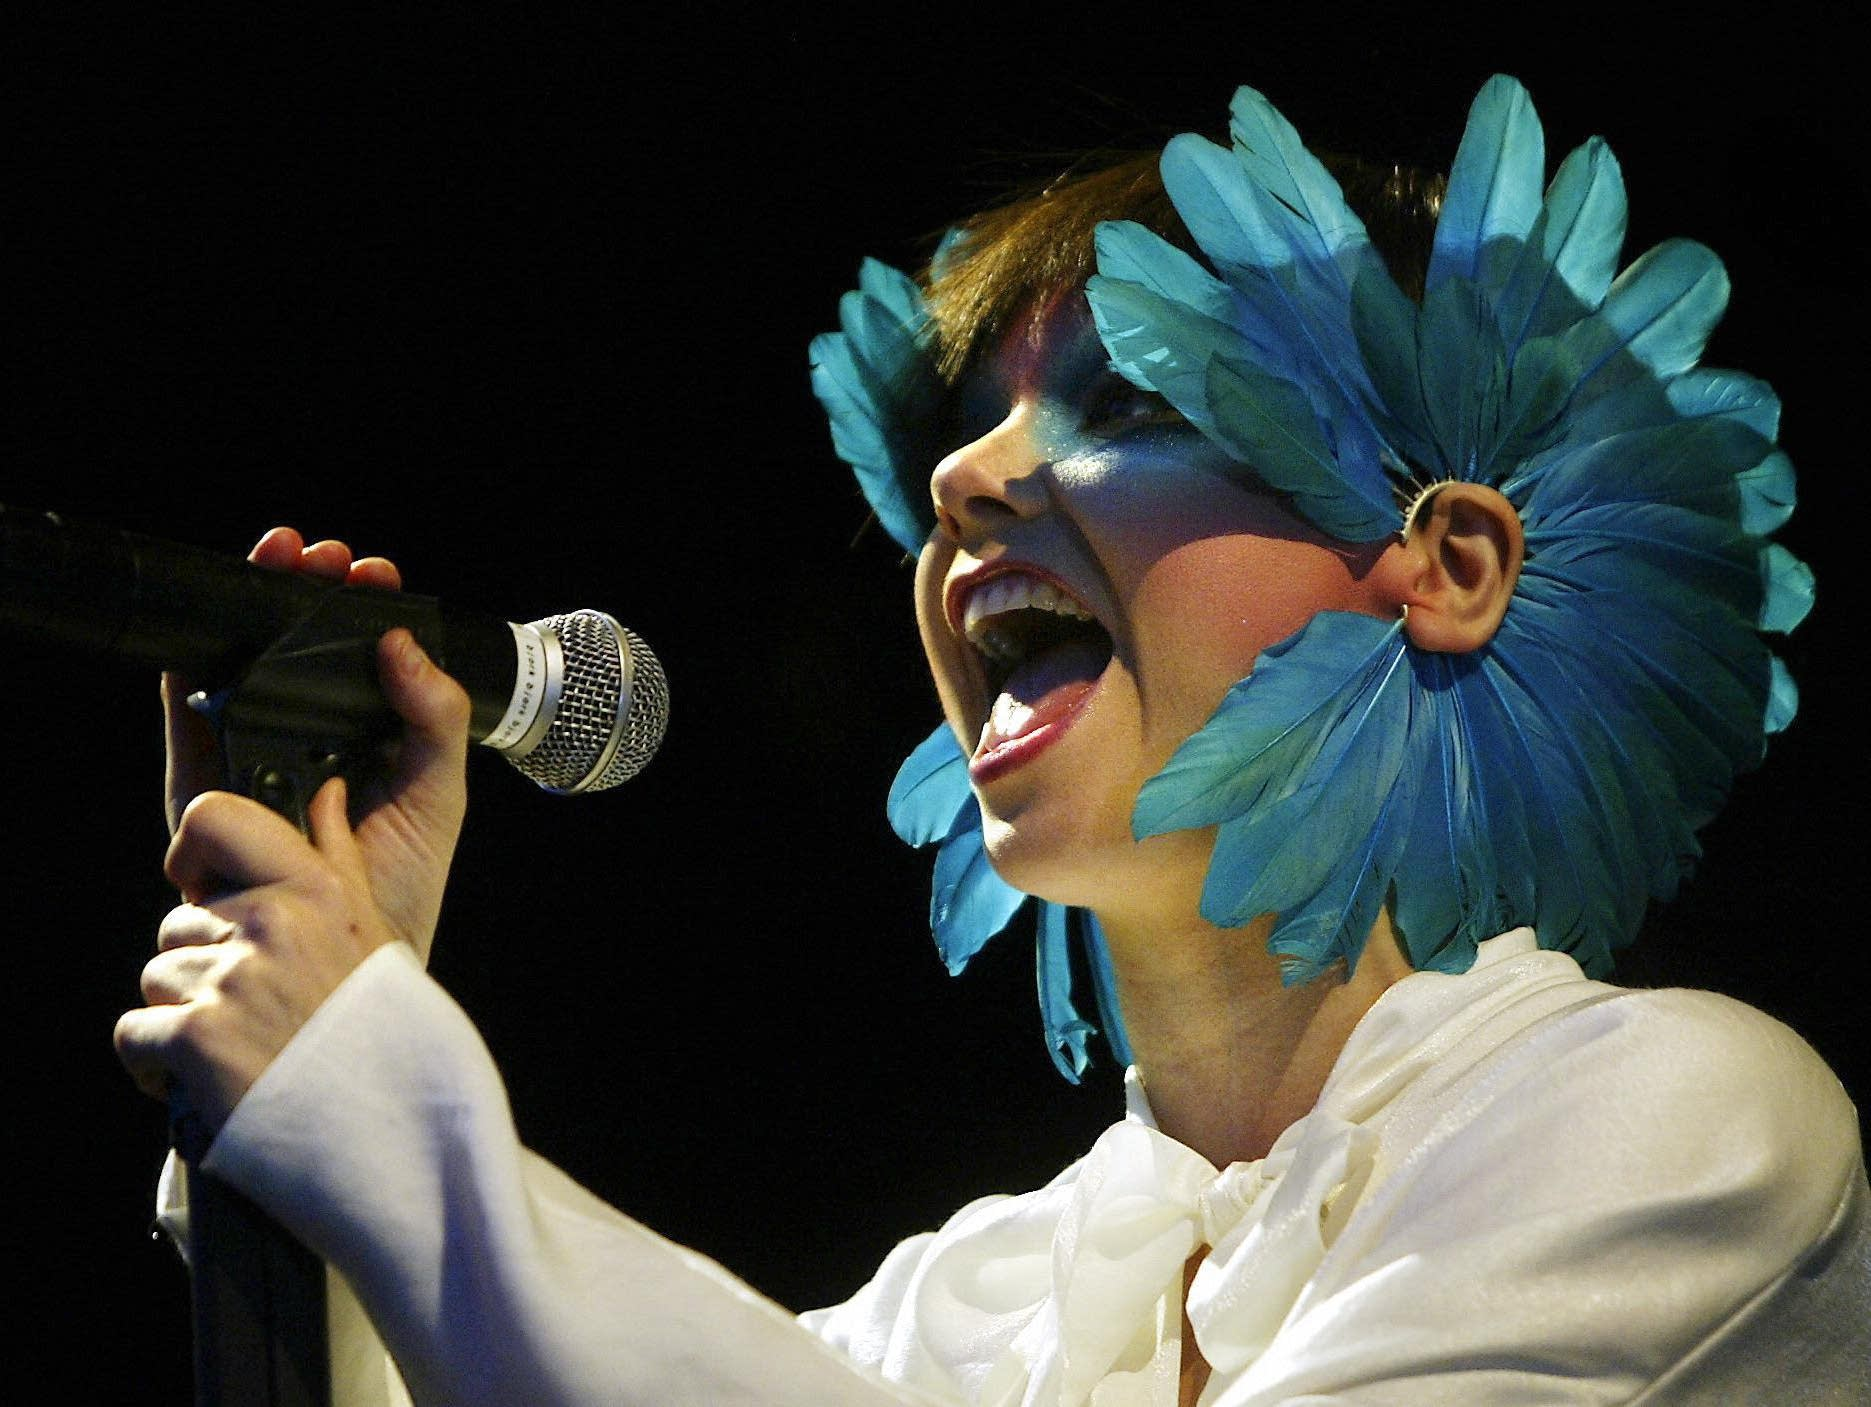 Bjork performs at the Roskilde Festival in 2003.